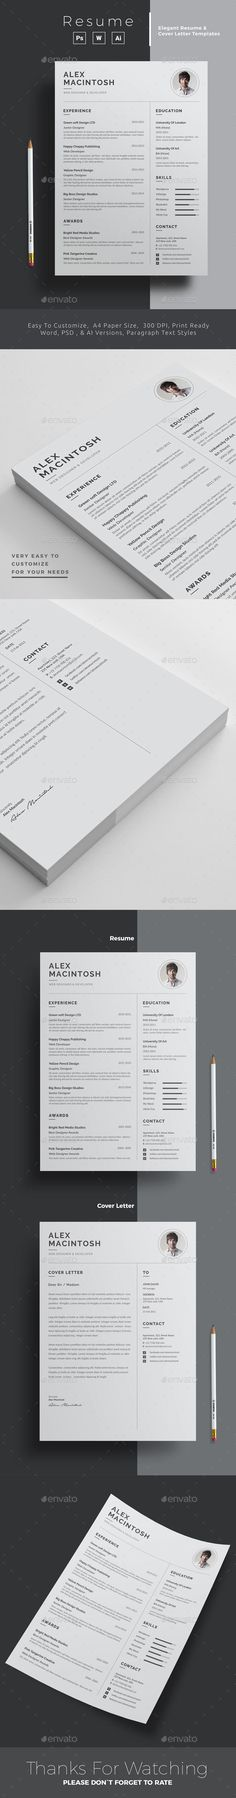 Buy Resume by upra on GraphicRiver. Resume Word Template / CV Template with super clean and modern look. Clean Resume Template page designs are easy to u. College Resume Template, Best Resume Template, Cv Template, Design Templates, Resume Design, Brochure Design, Job Resume, Resume 2017, Resume Words Skills